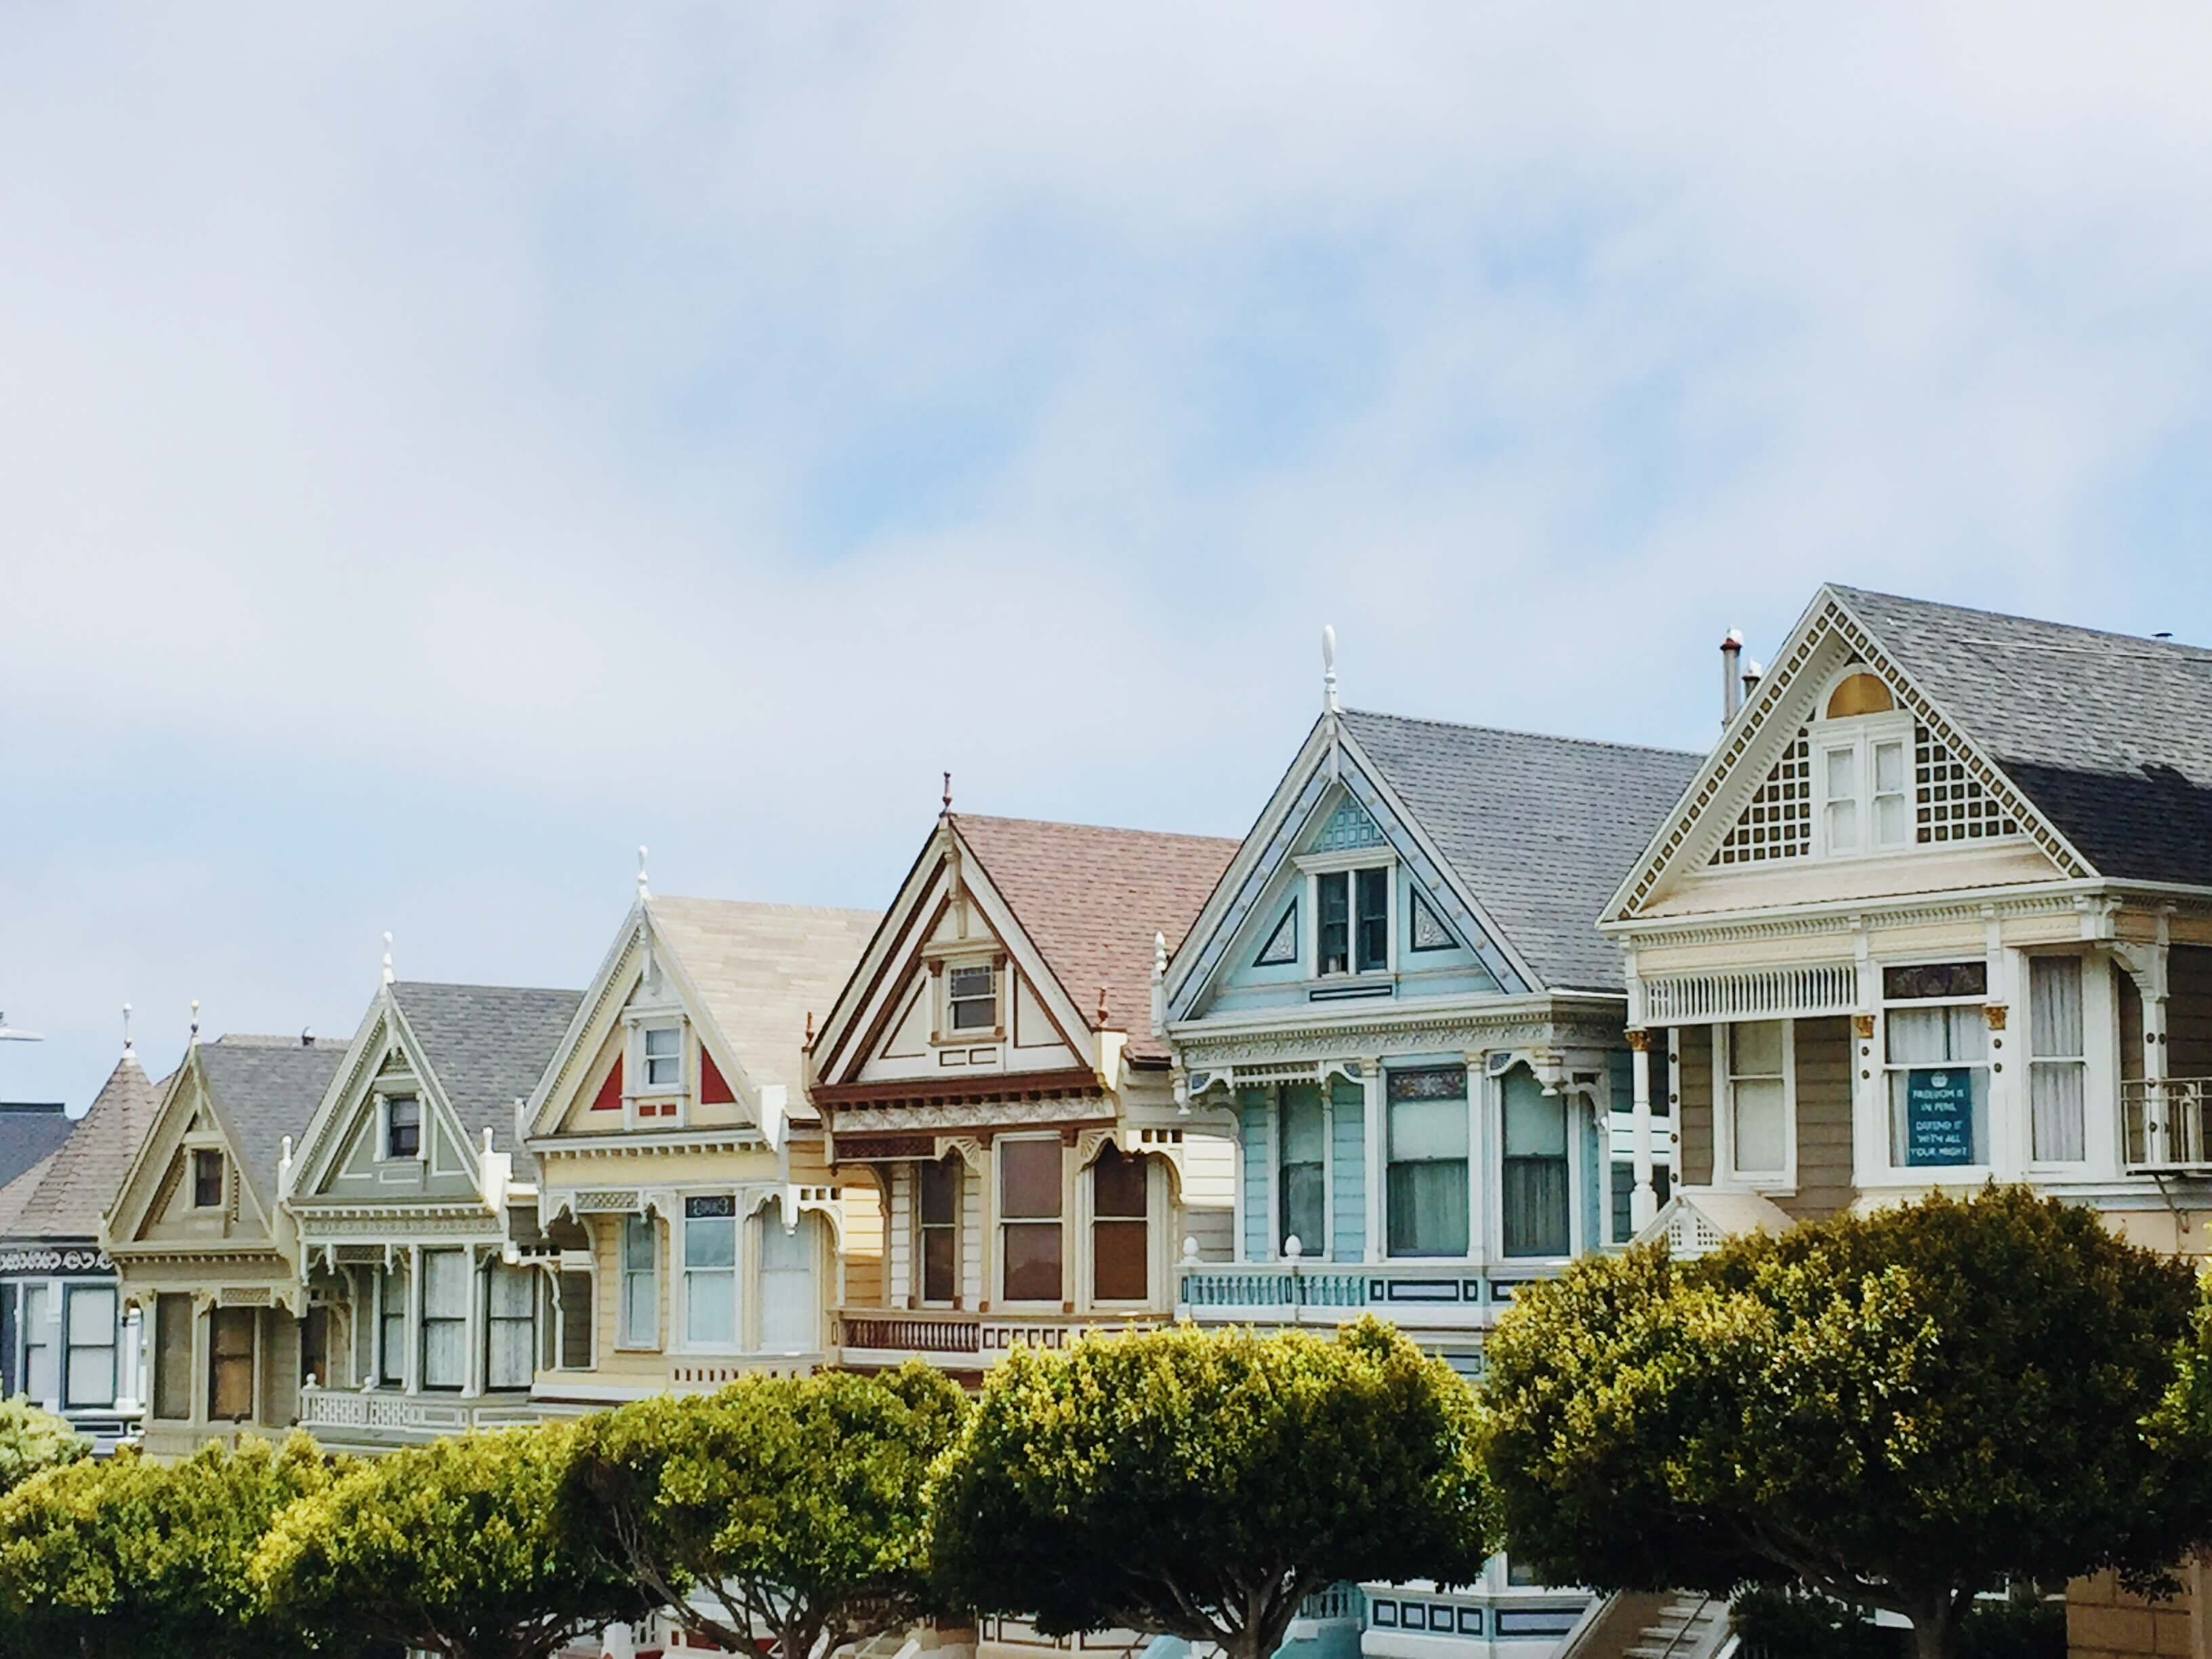 picture of houses on a block